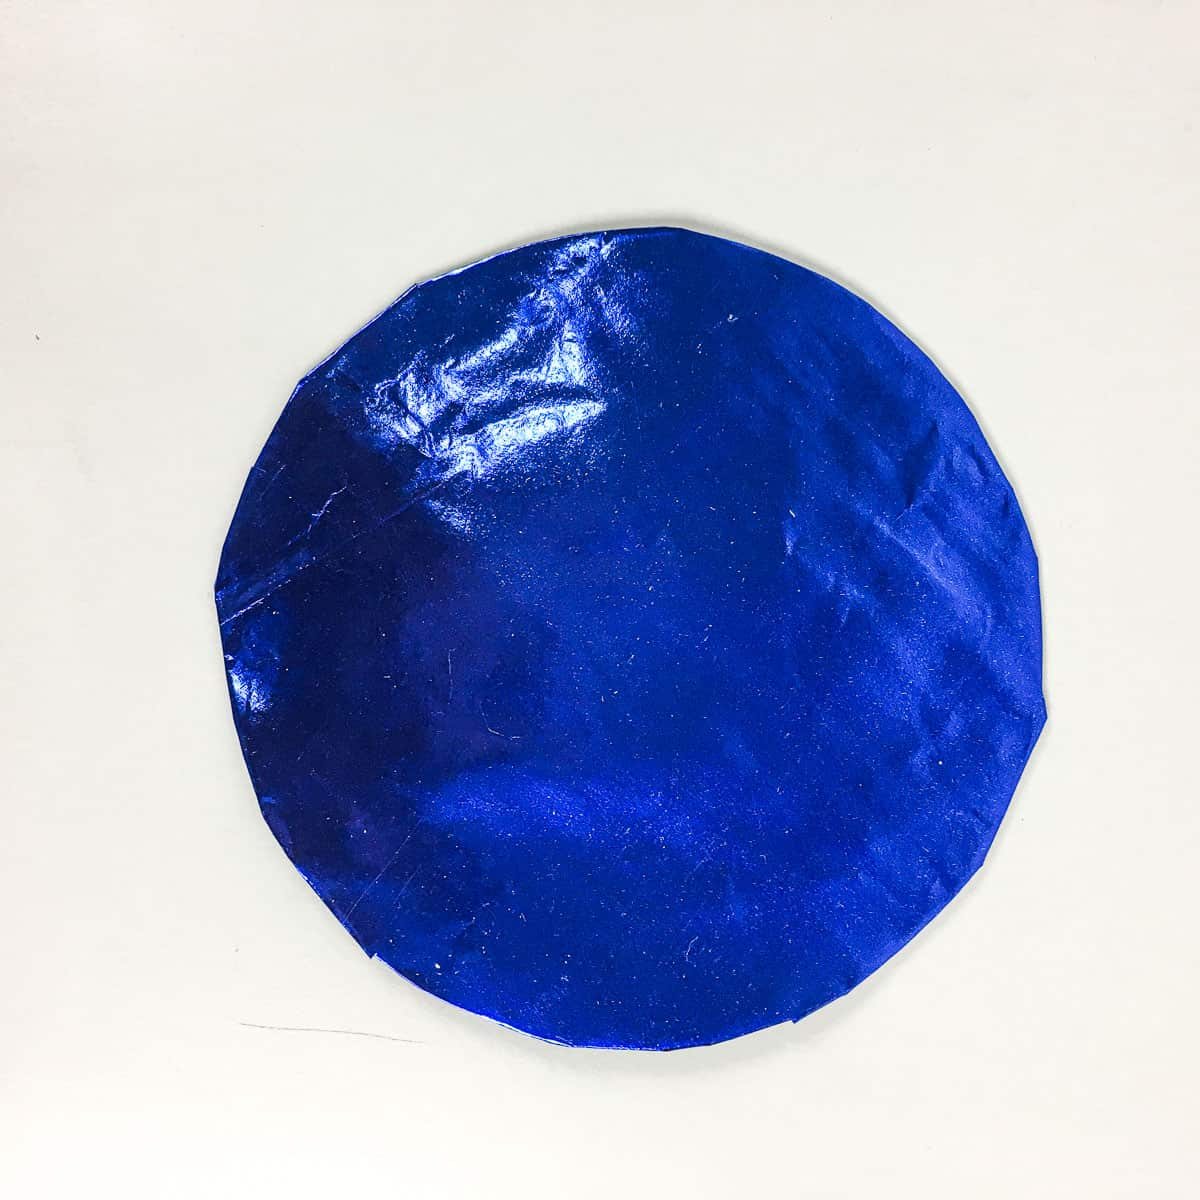 A cake board wrapped in blue paper